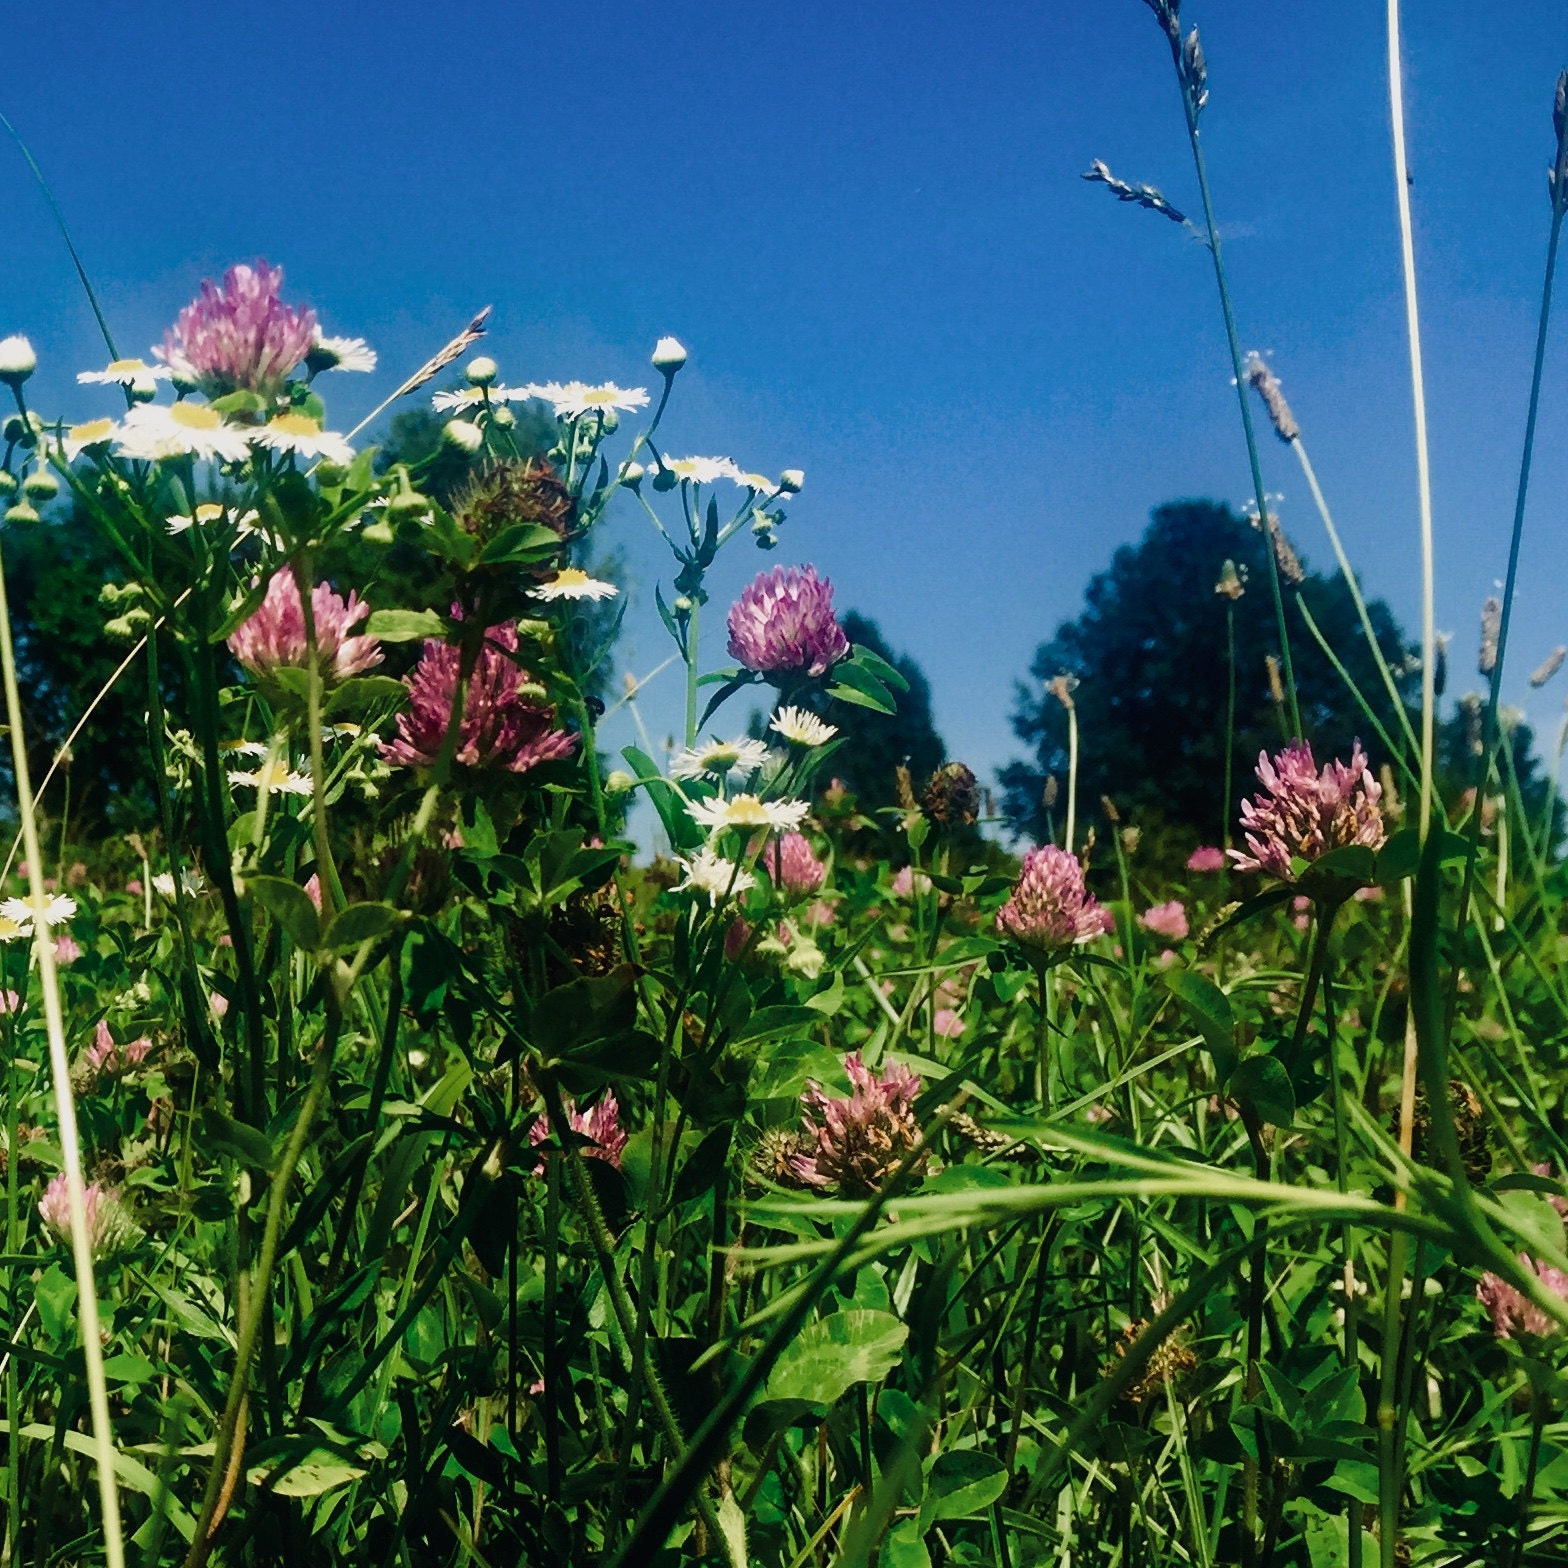 Meadow of Red Clover or Trifolium pratense